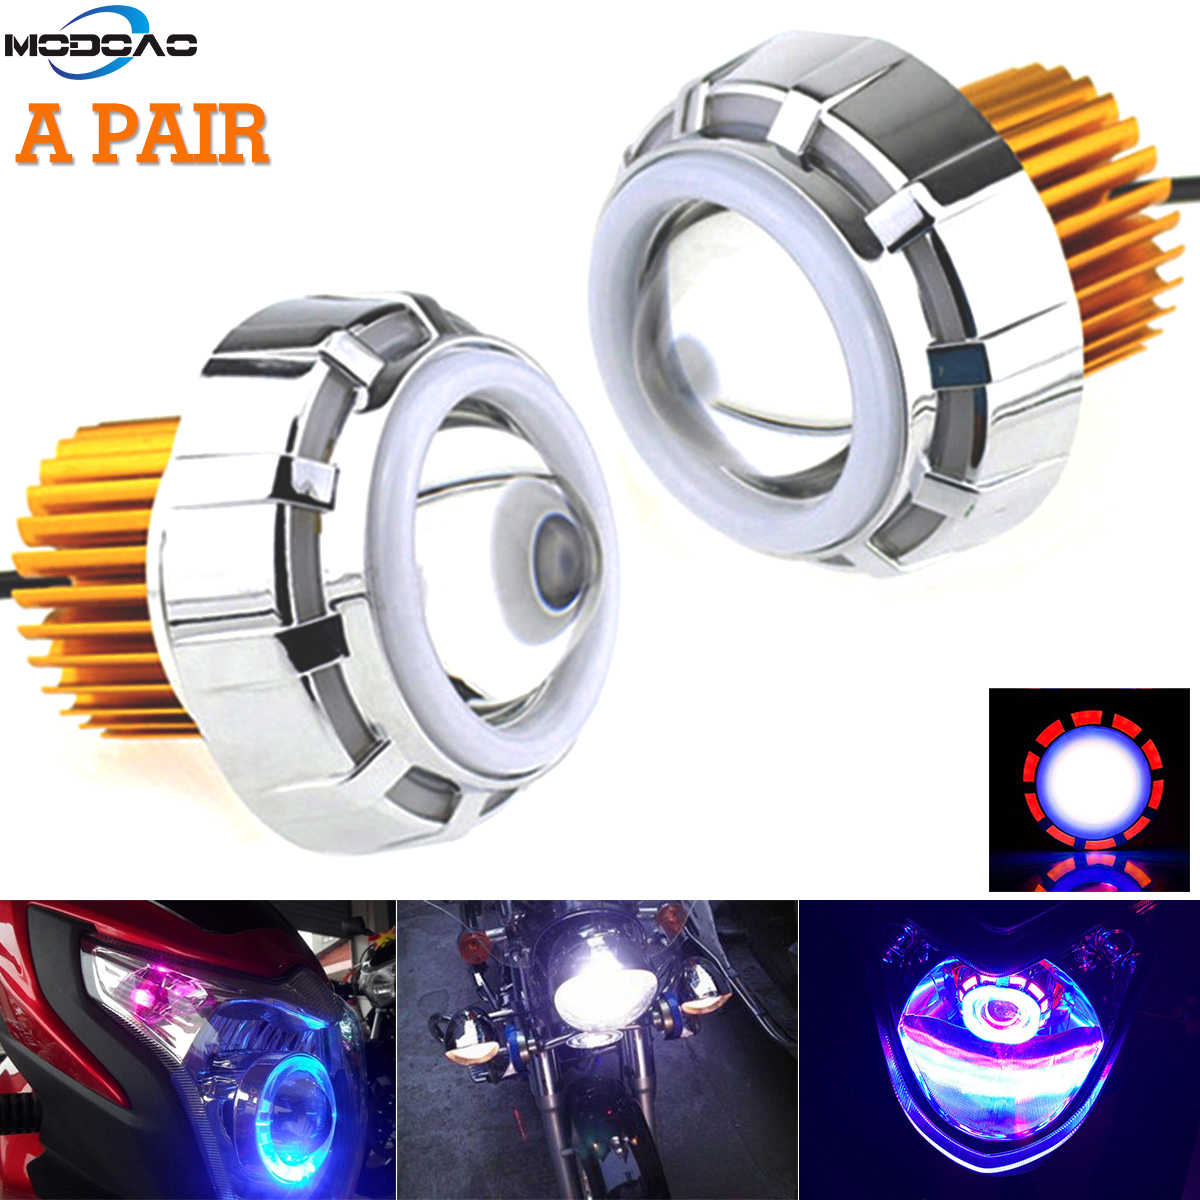 1Pair LED Angel Lens Projector Headlight COB Devil Eyes Bi xenon Spot Strobe Headlamp DIY Car Moto Daytime Running Bulbs